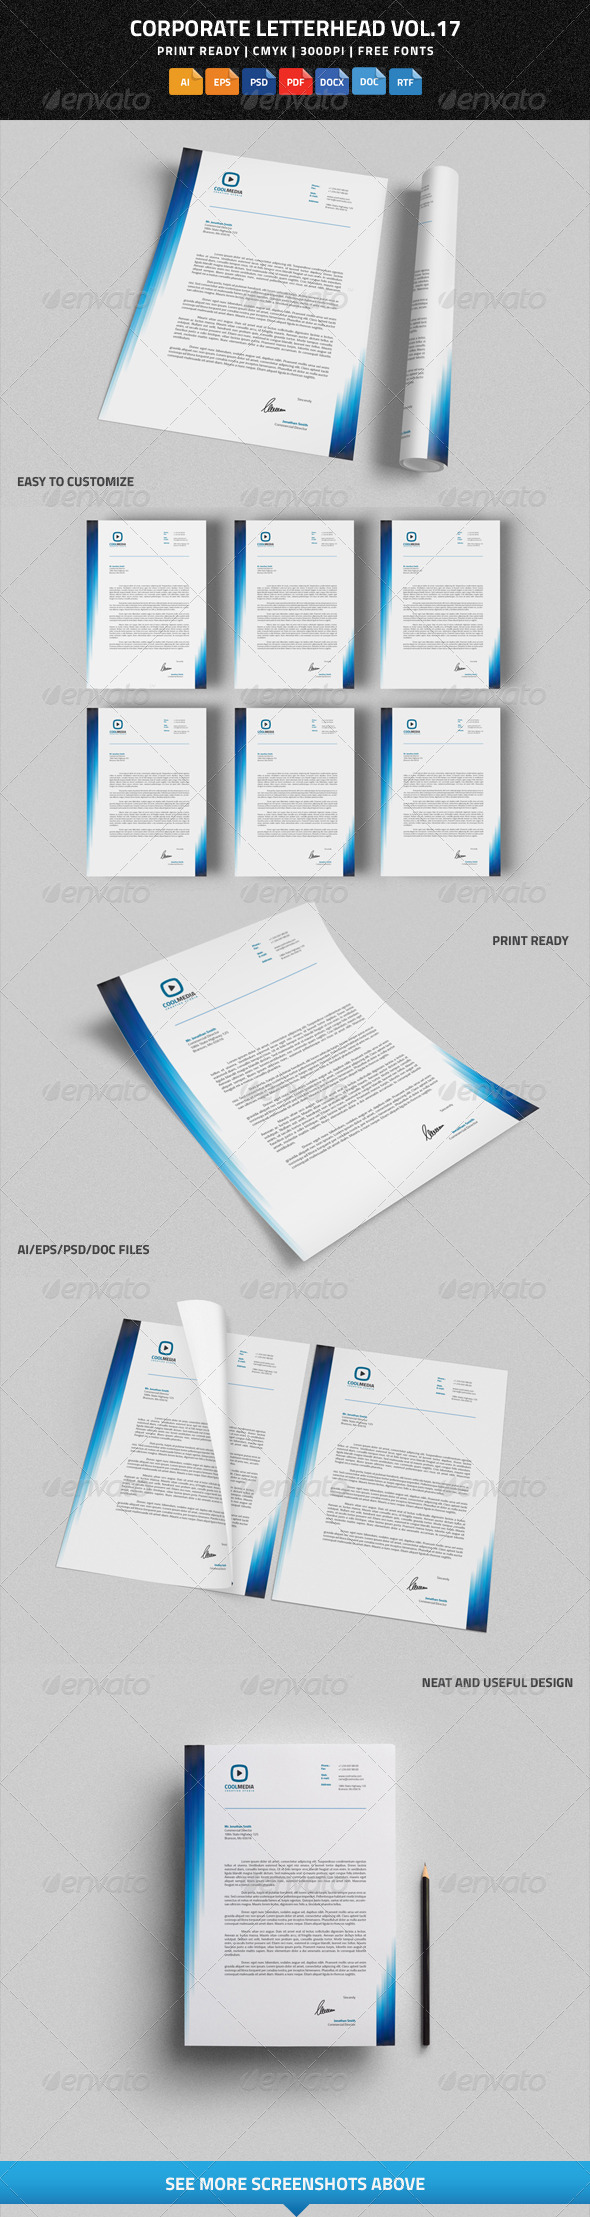 GraphicRiver Corporate Letterhead vol.17 with MS Word DOC DOCX 8591051